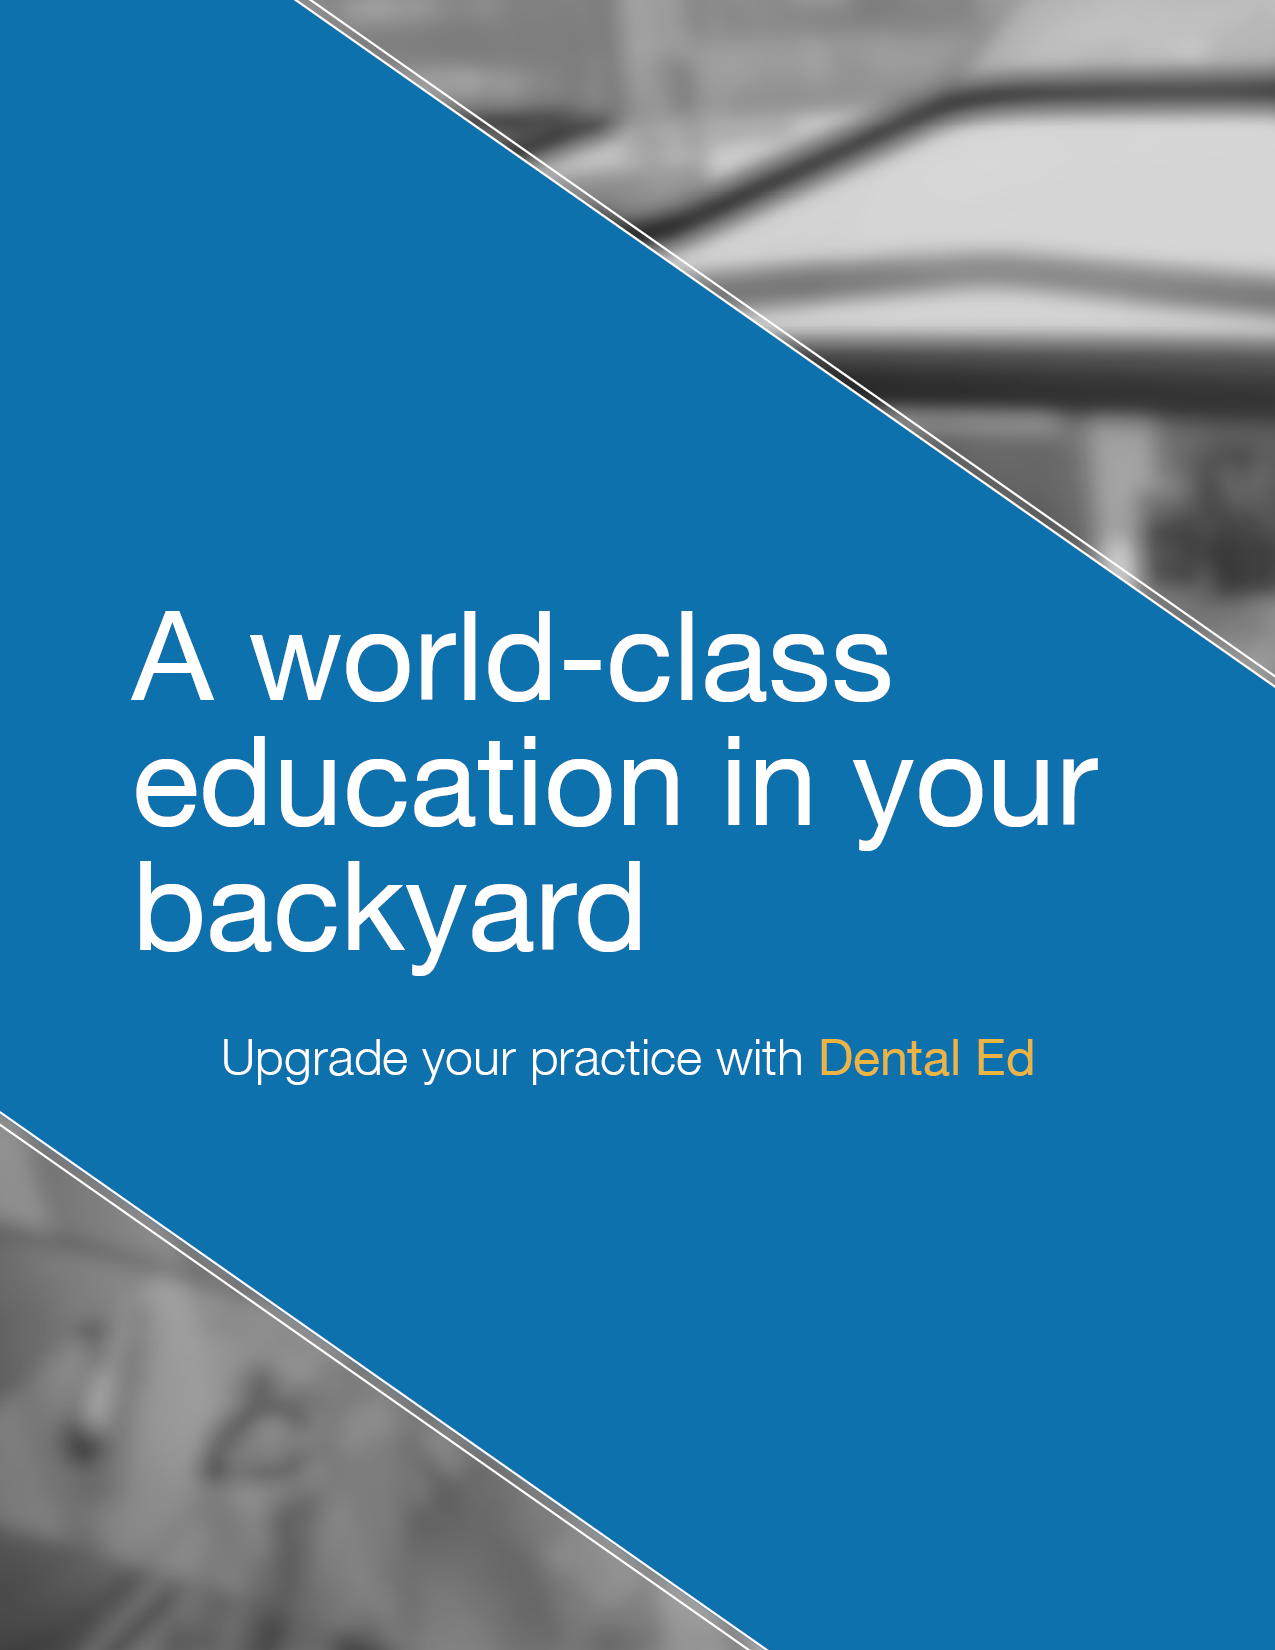 Dental Ed Brochure 2014_1_15.png